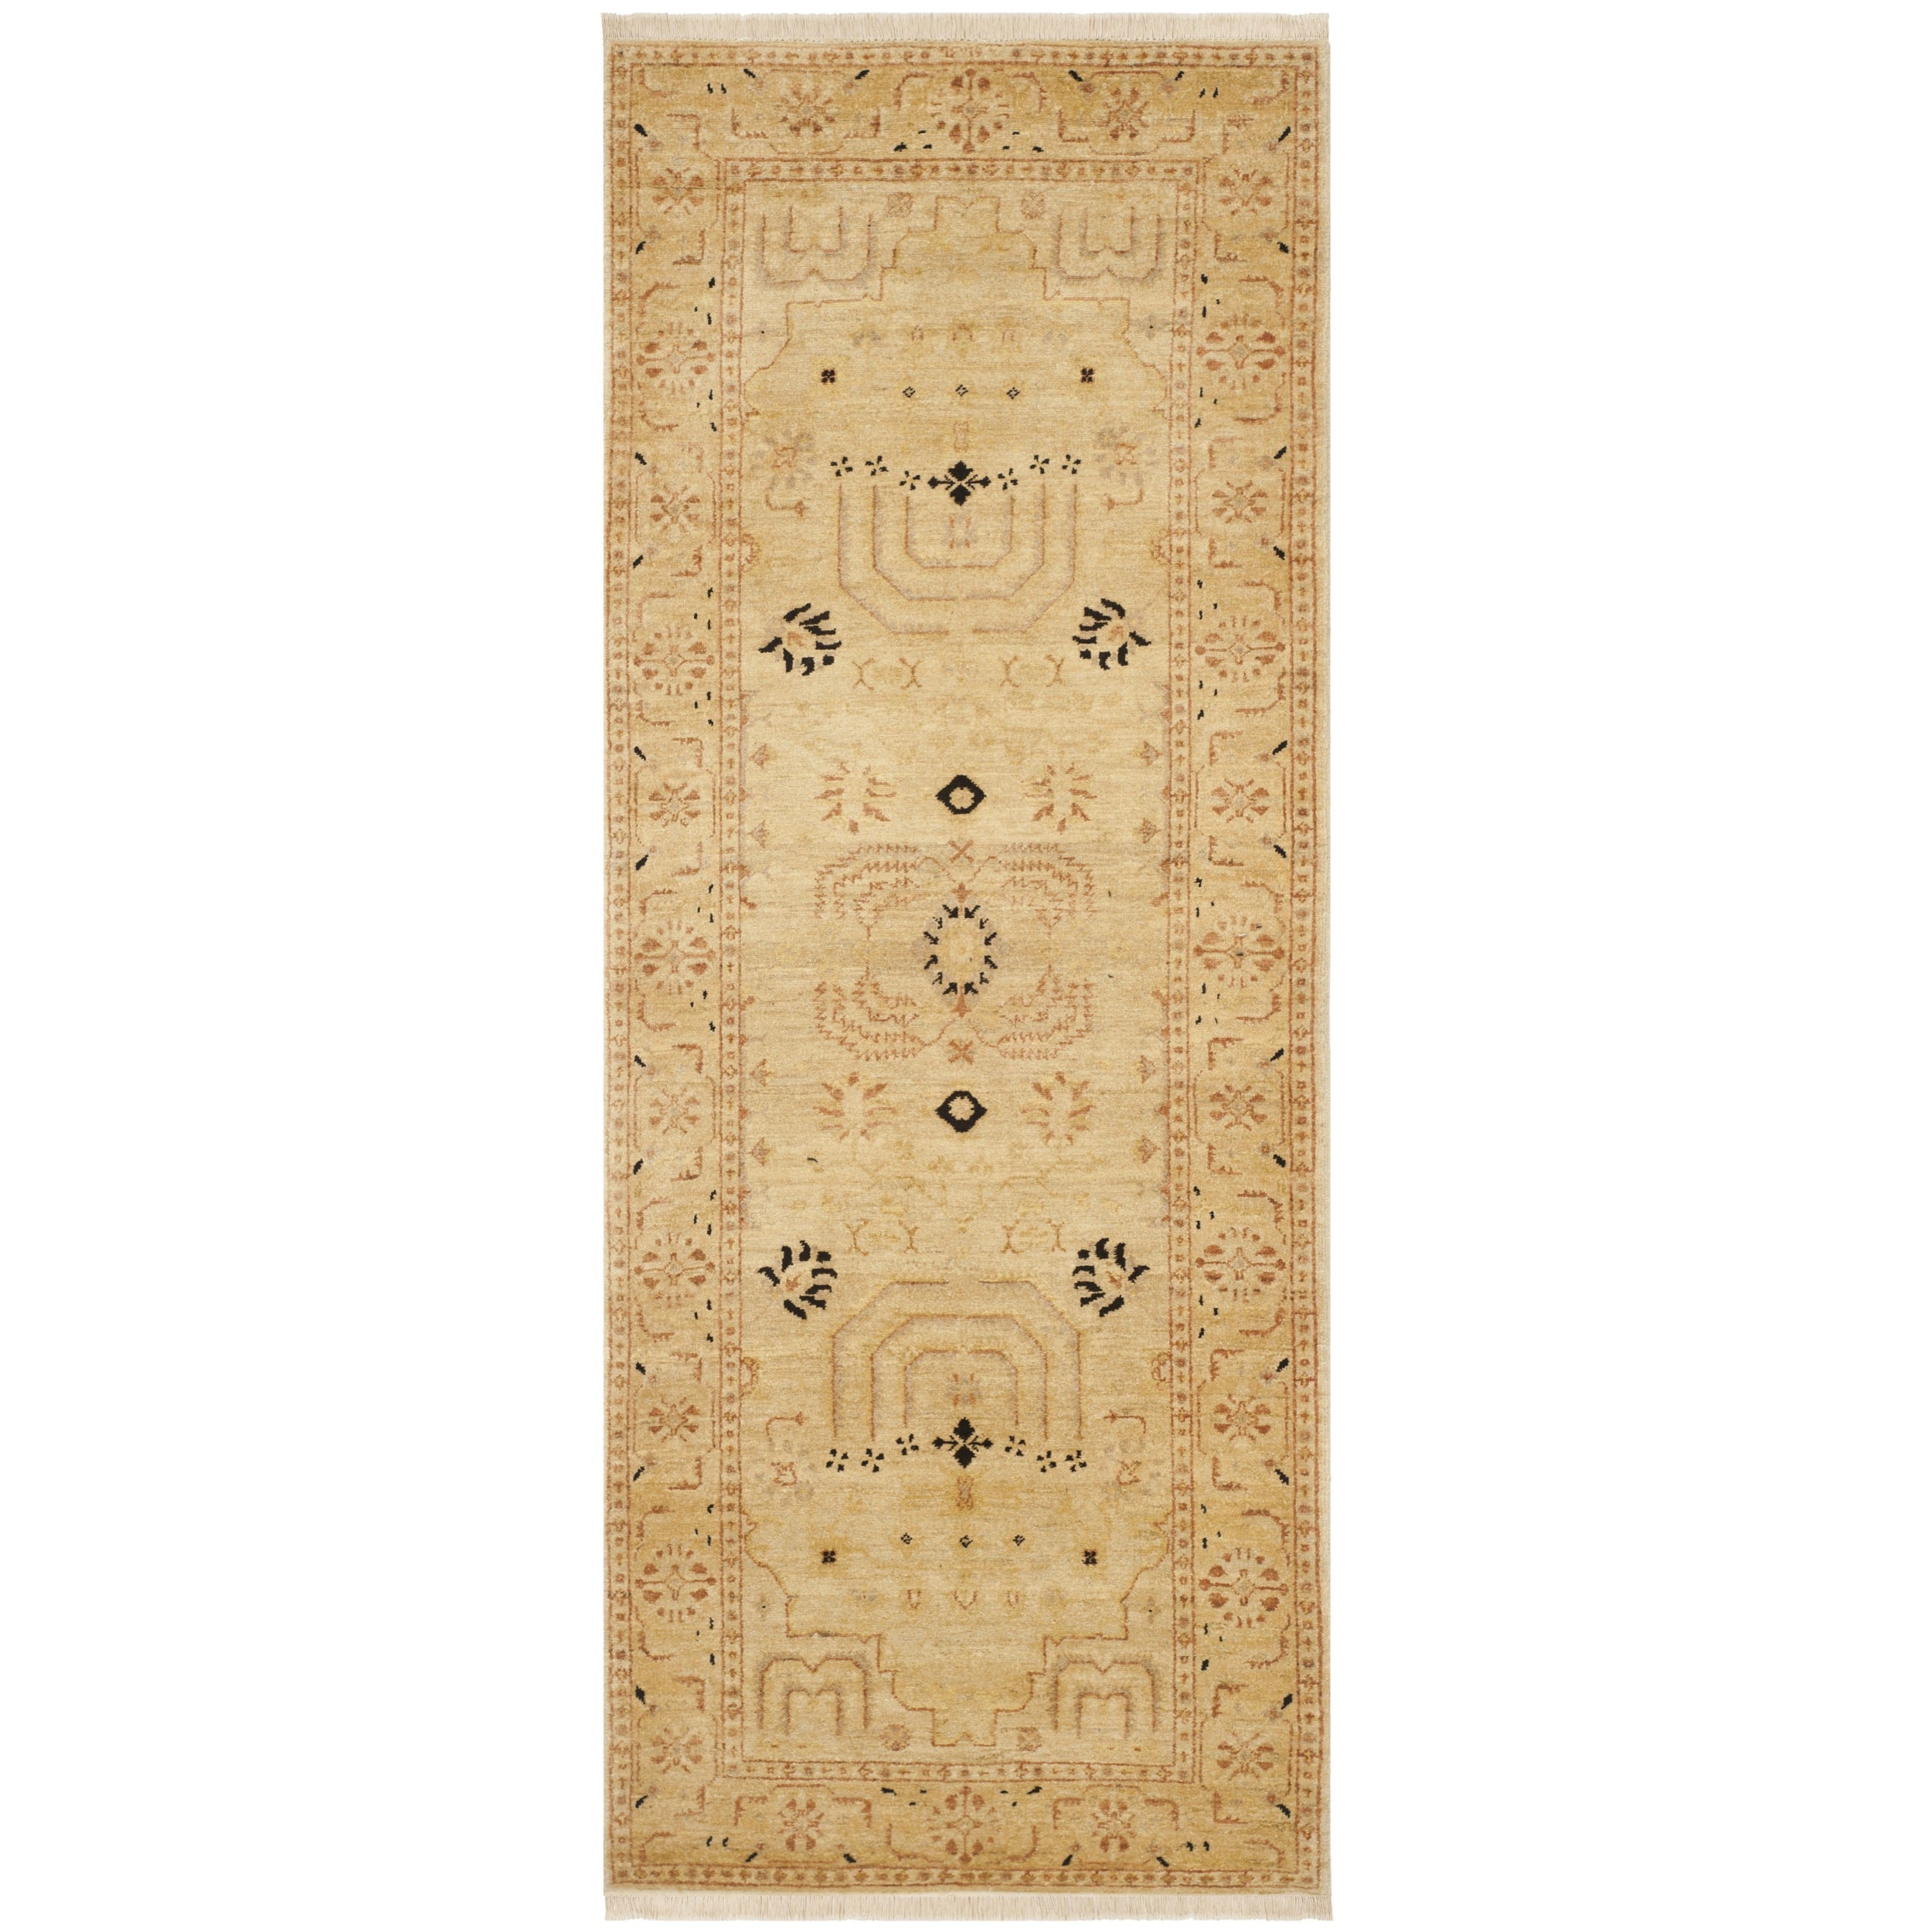 Safavieh Hand-knotted Peshawar Vegetable Dye Ivory/ Ivory Wool Rug (3' x 12')